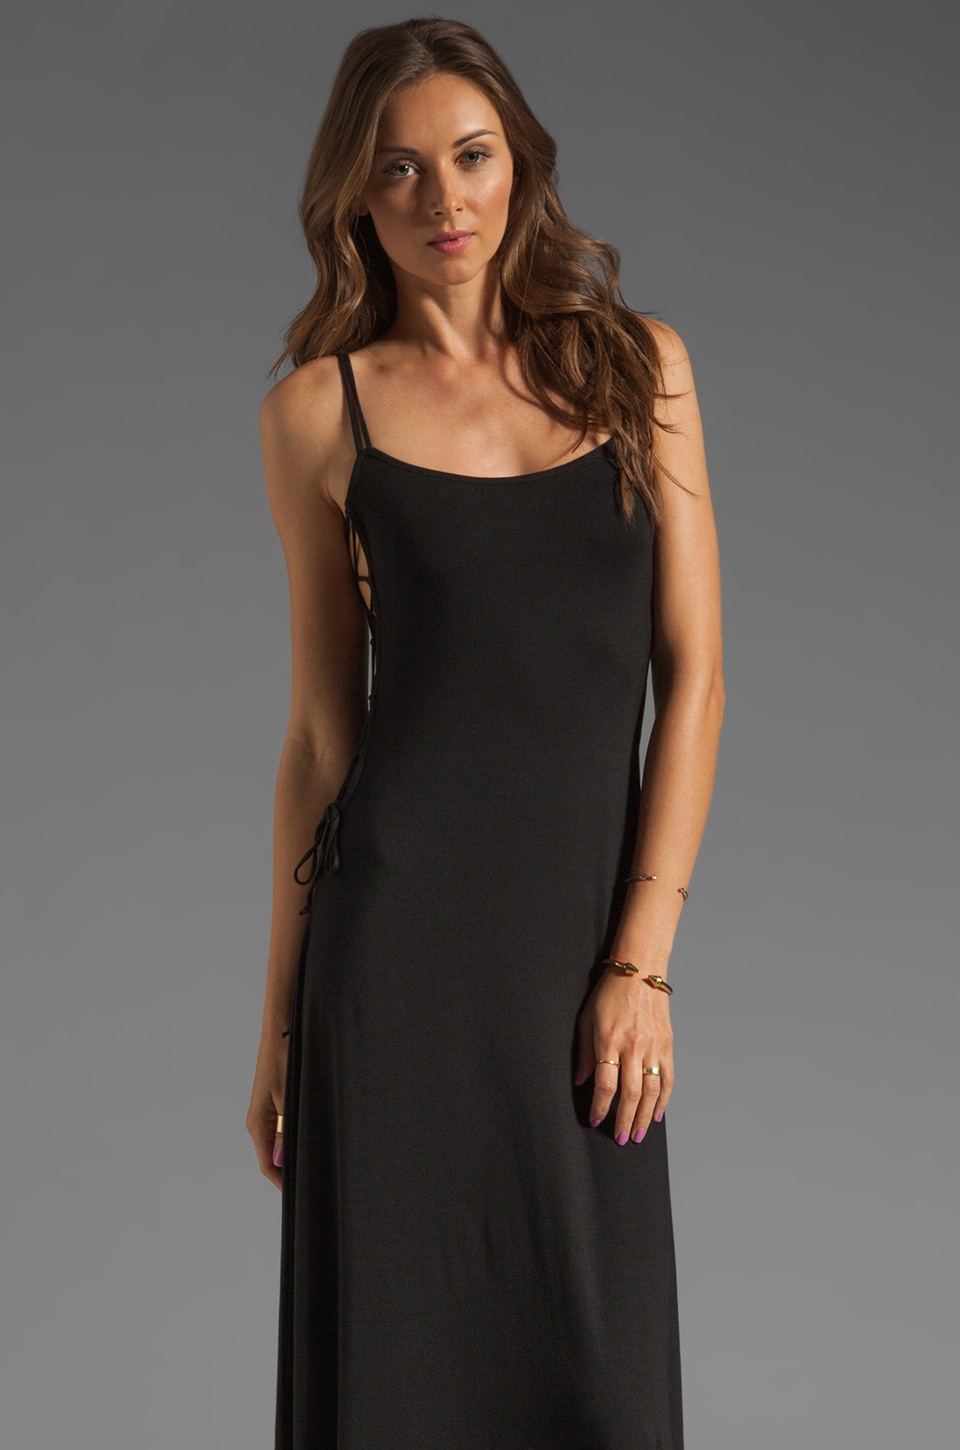 Rachel Pally Jayden Tie Side Dress in Black